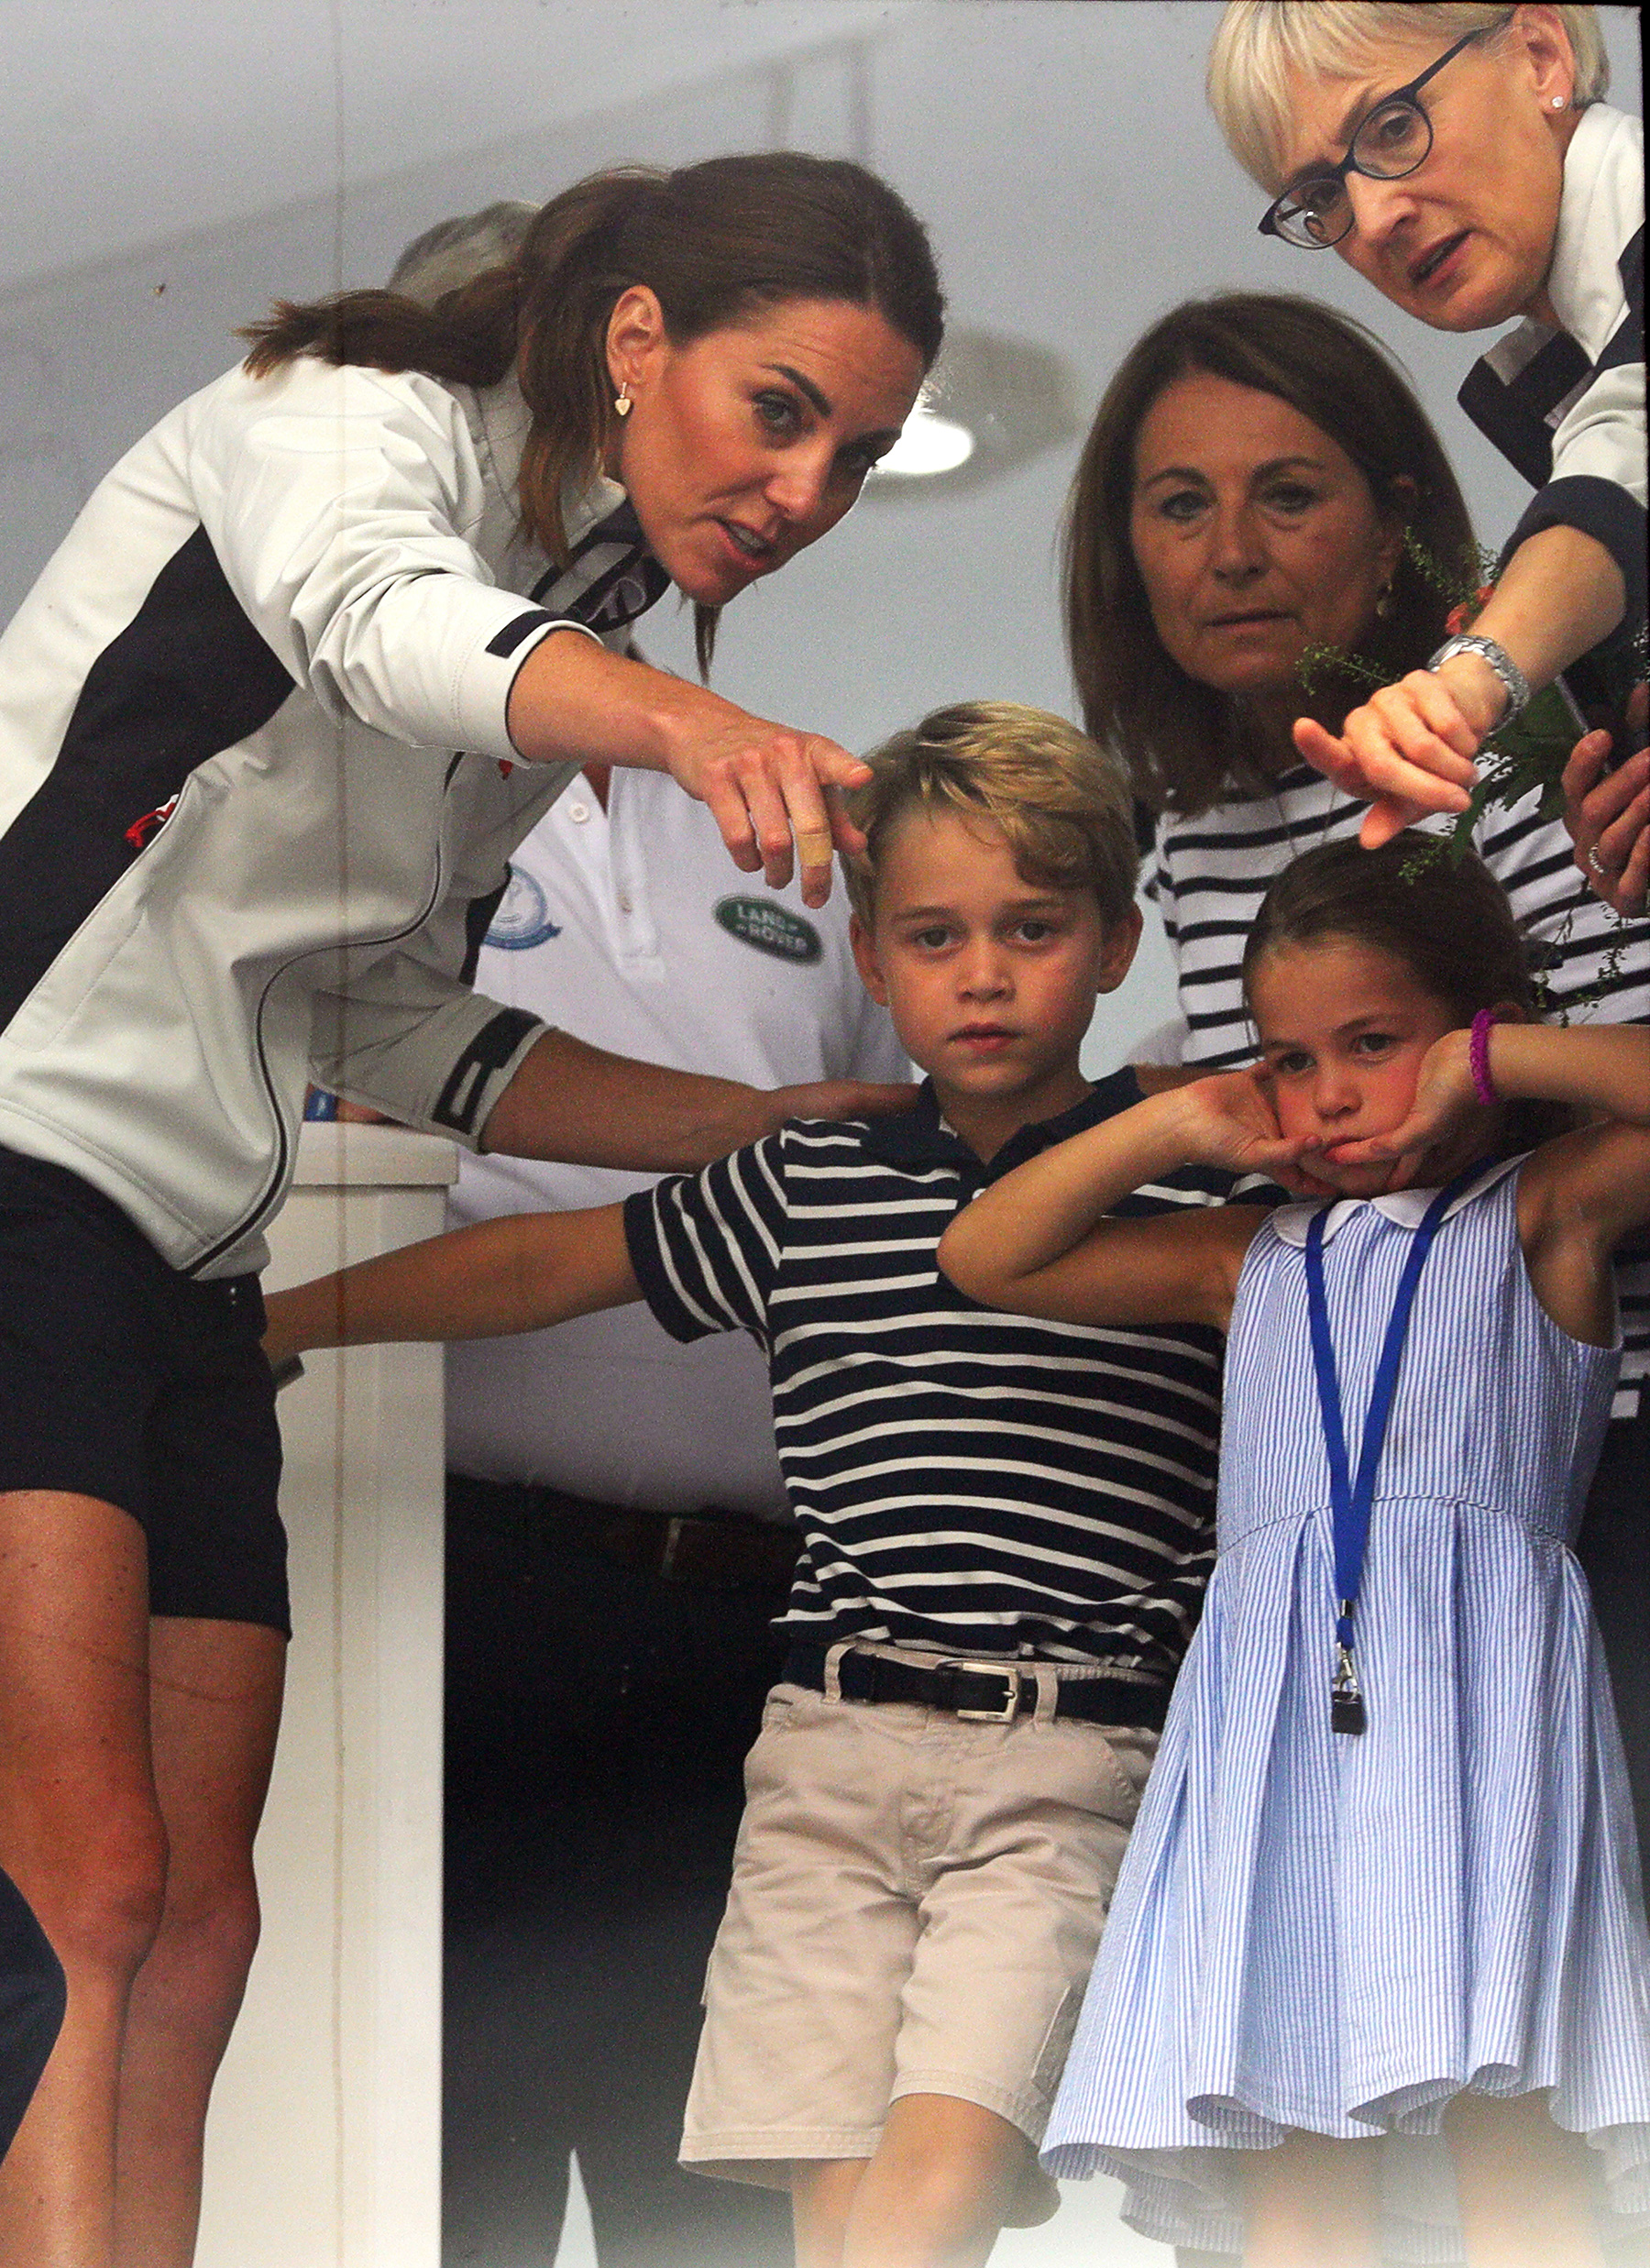 See Kate Middleton Jump Into Mom Mode After Princess Charlotte Playfully Sticks Out Her Tongue!